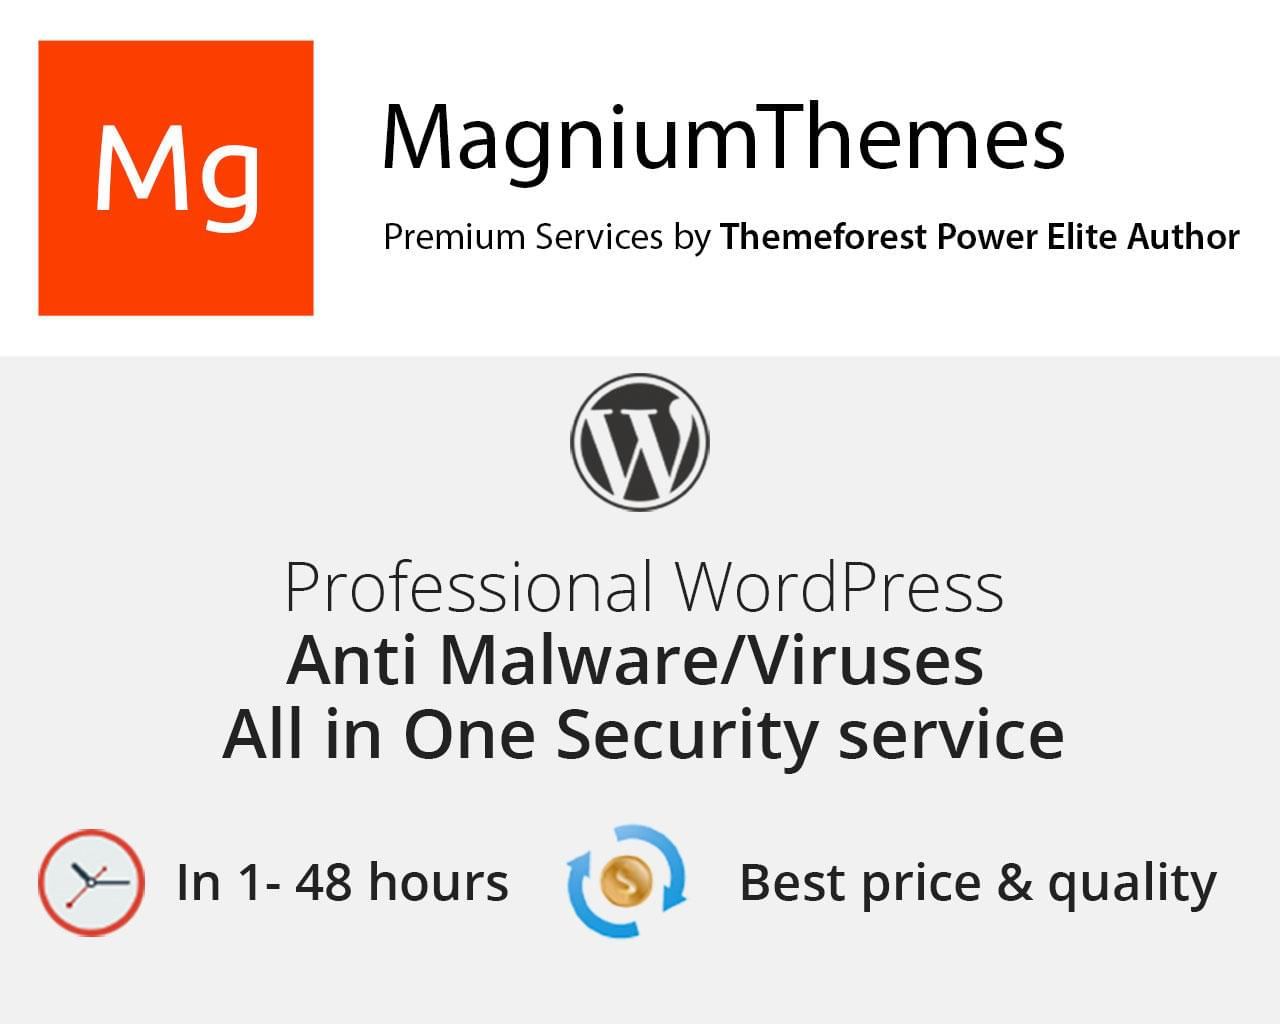 WordPress Malware/Virus Scan, Cleaning, Removal, Fixing service for hacked sites - All in One by dedalx - 112029